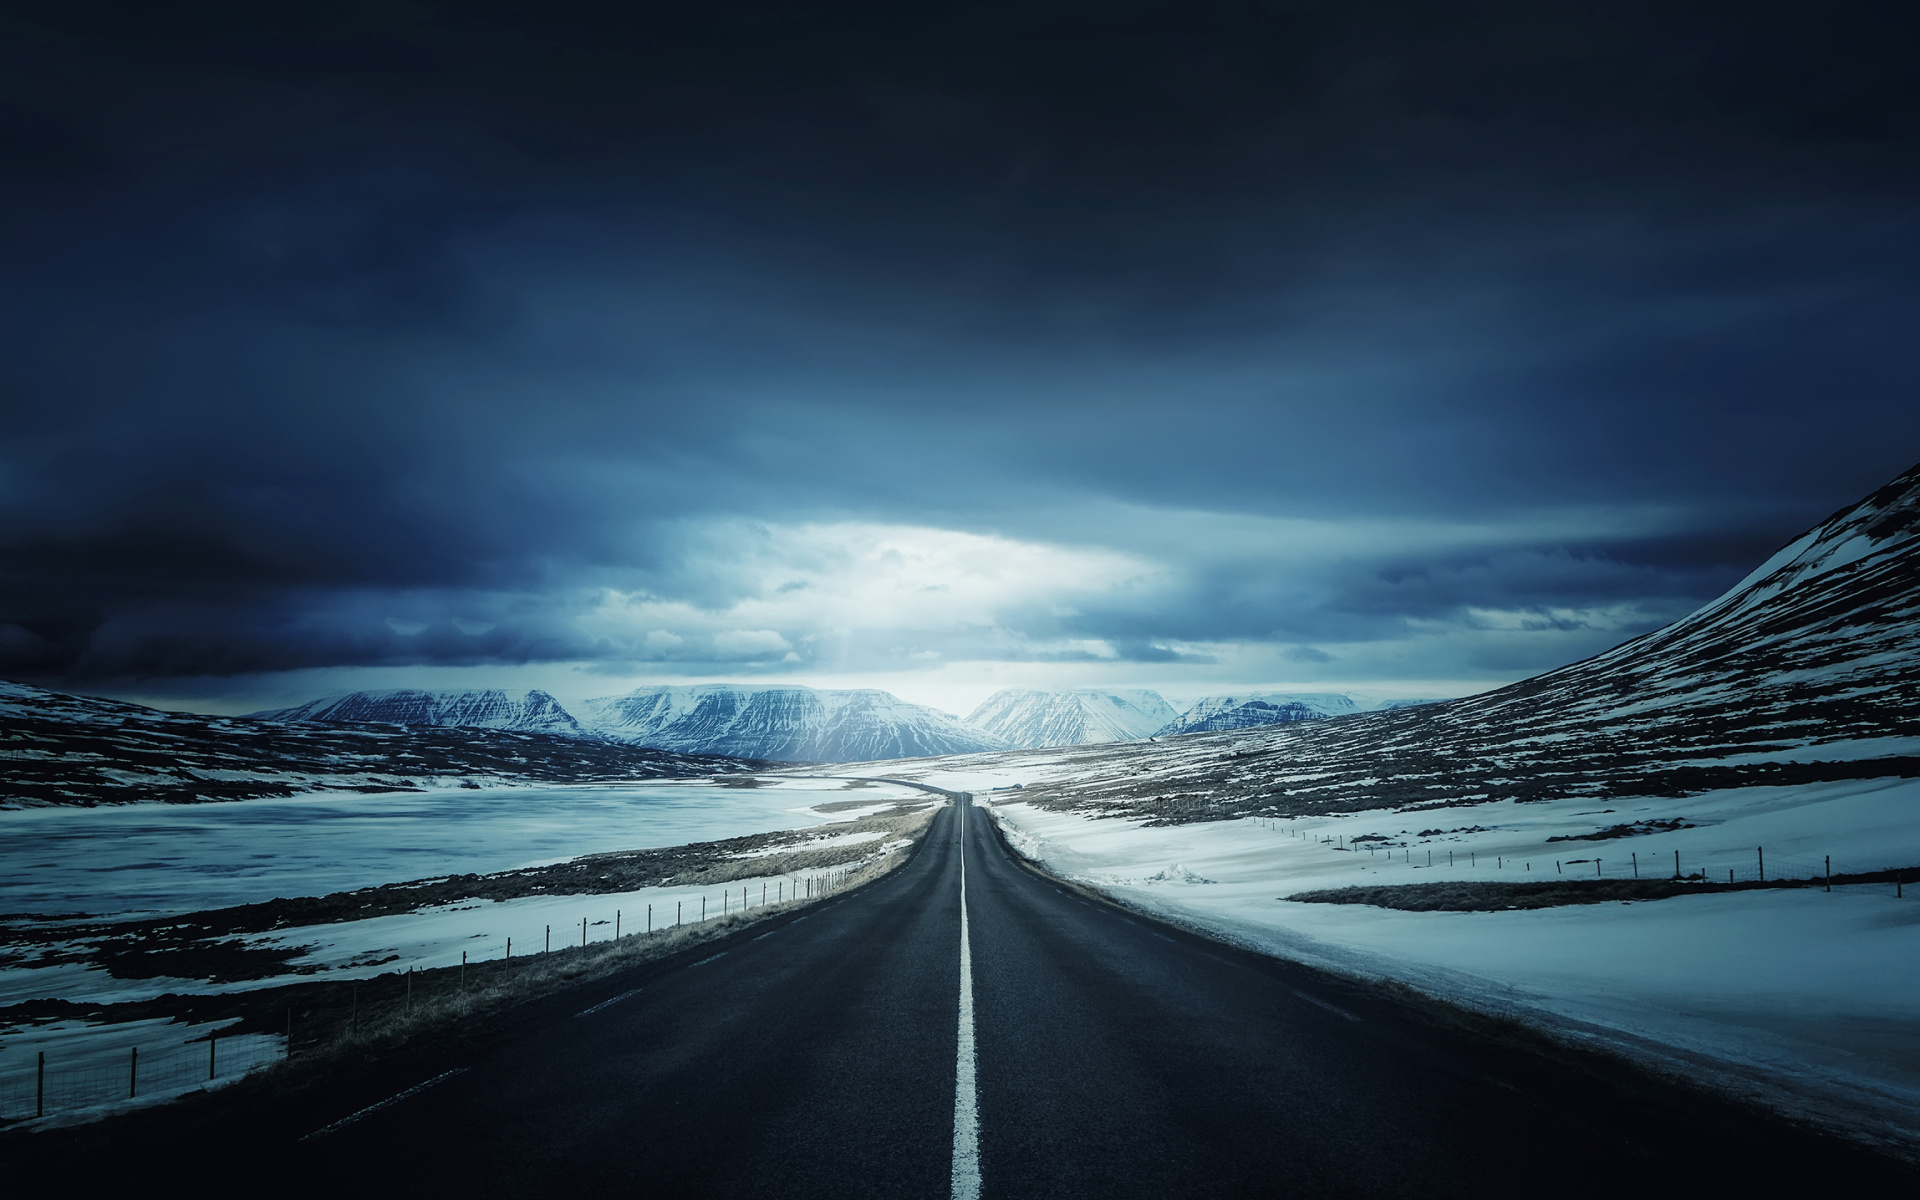 Iceland S Ring Road Wallpapers: Road In Iceland HD Wallpaper